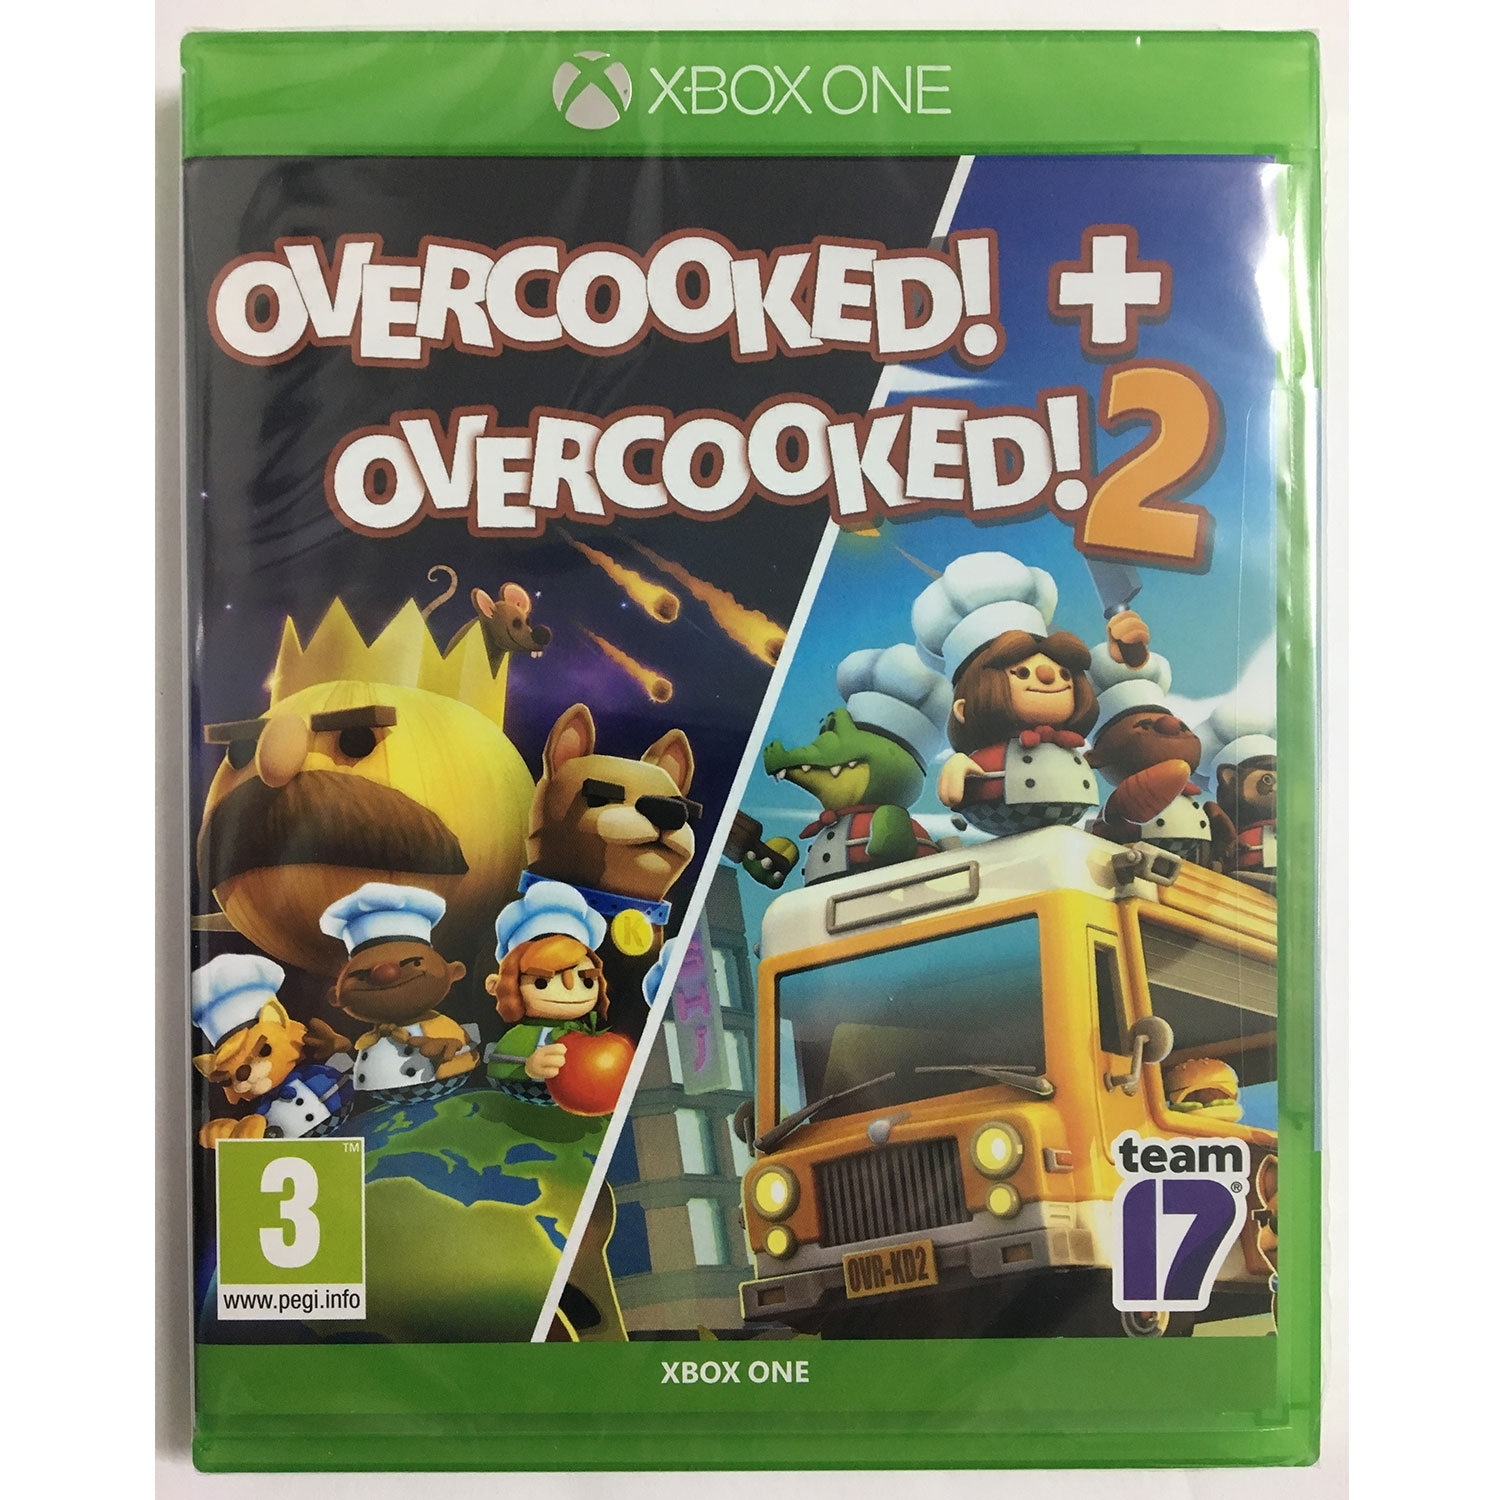 Overcooked 1 Special Edition + Overcooked 2 - Double Pack Xb - Atacado dos Jogos